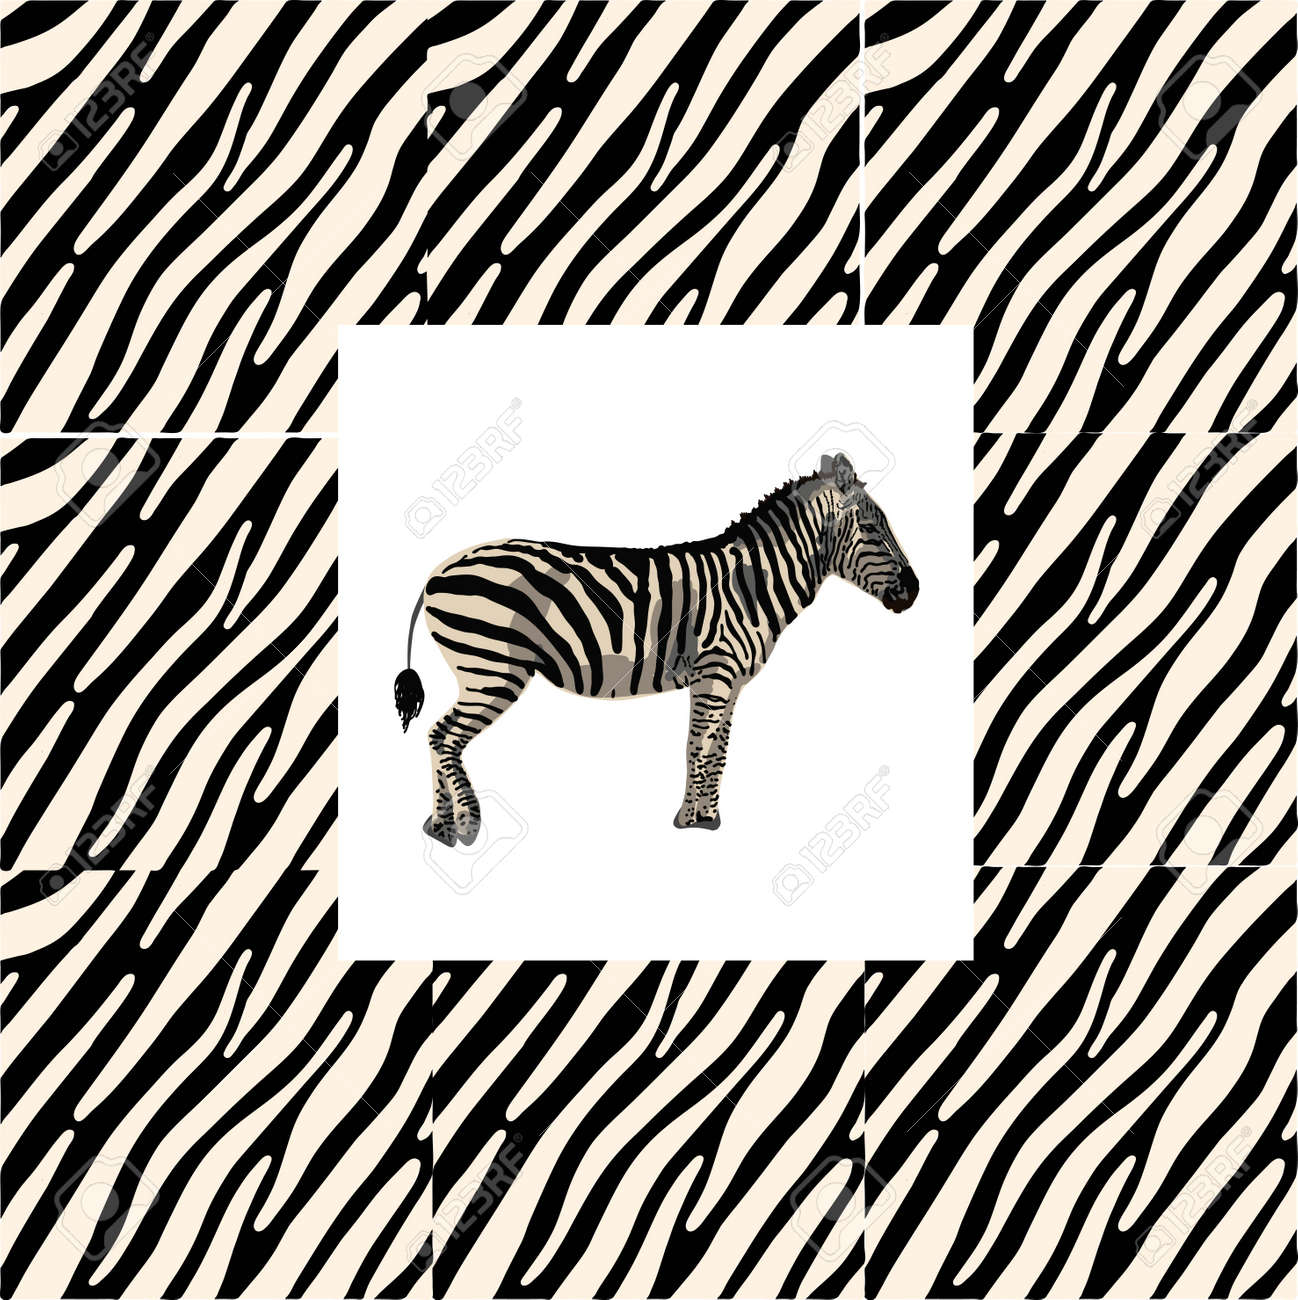 ETHNIC TREND. PAINTING IN AFRICAN STYLE. SEAMLESS AFRICAN PATTERN. TRADITIONAL PATTERN. savanna animals. zebra. Vector illustration. Fashion. - 168195307